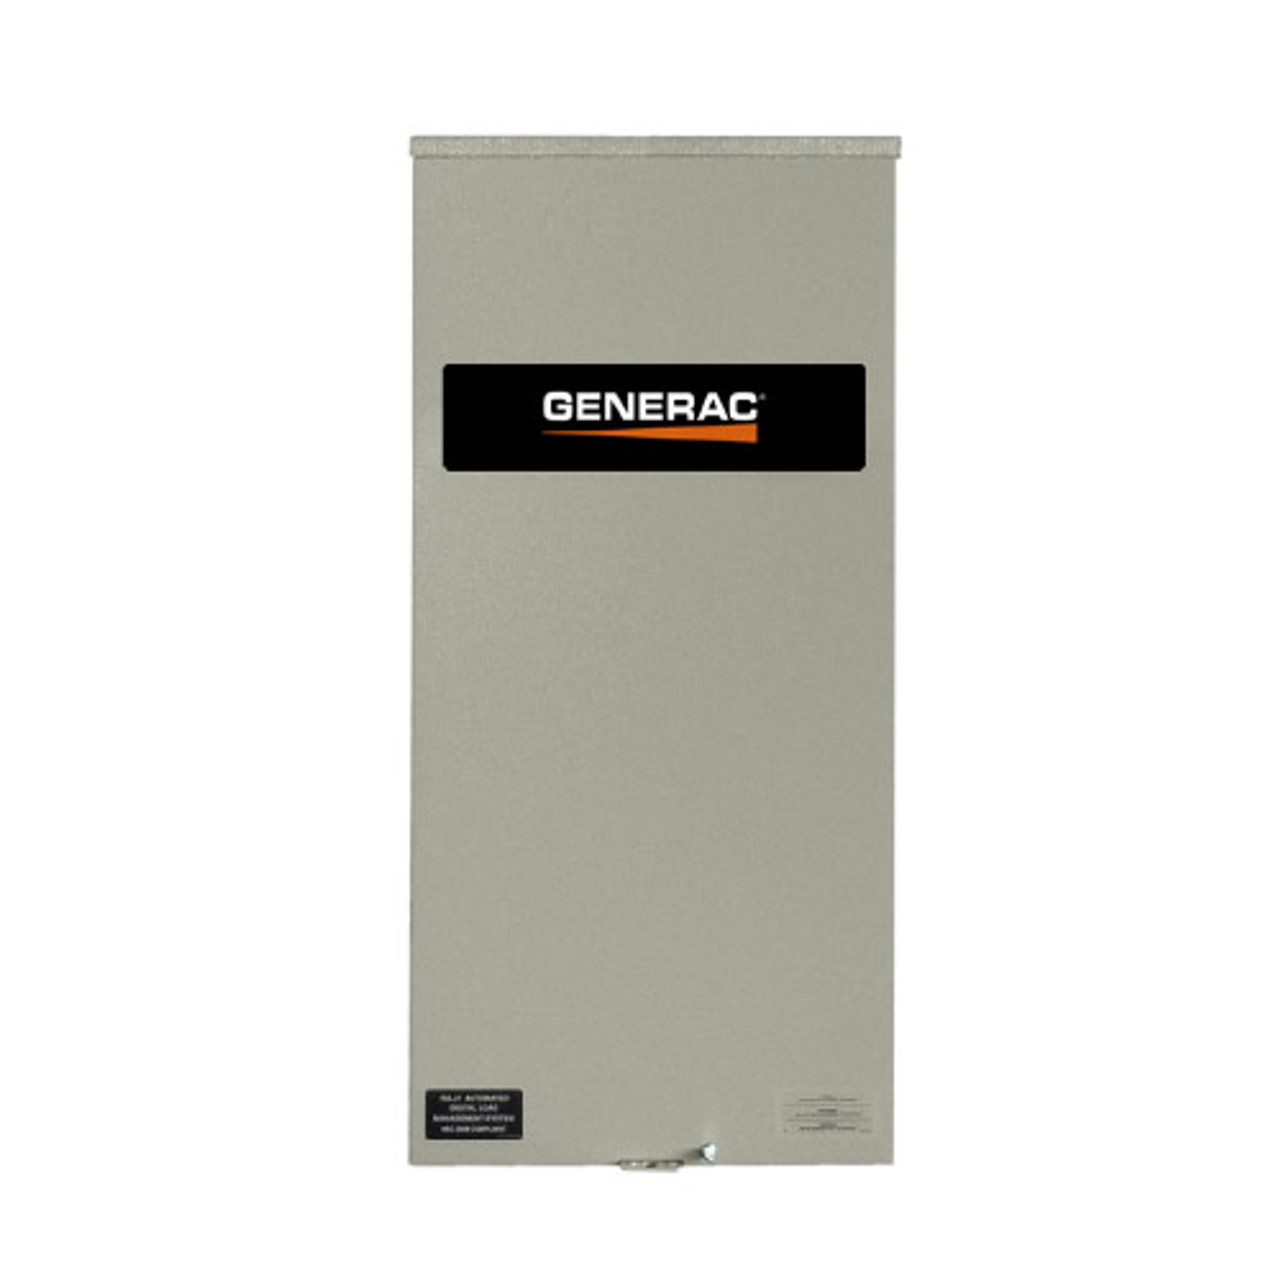 Generac RTSW200A3 Automatic Transfer Switch | Nationwide